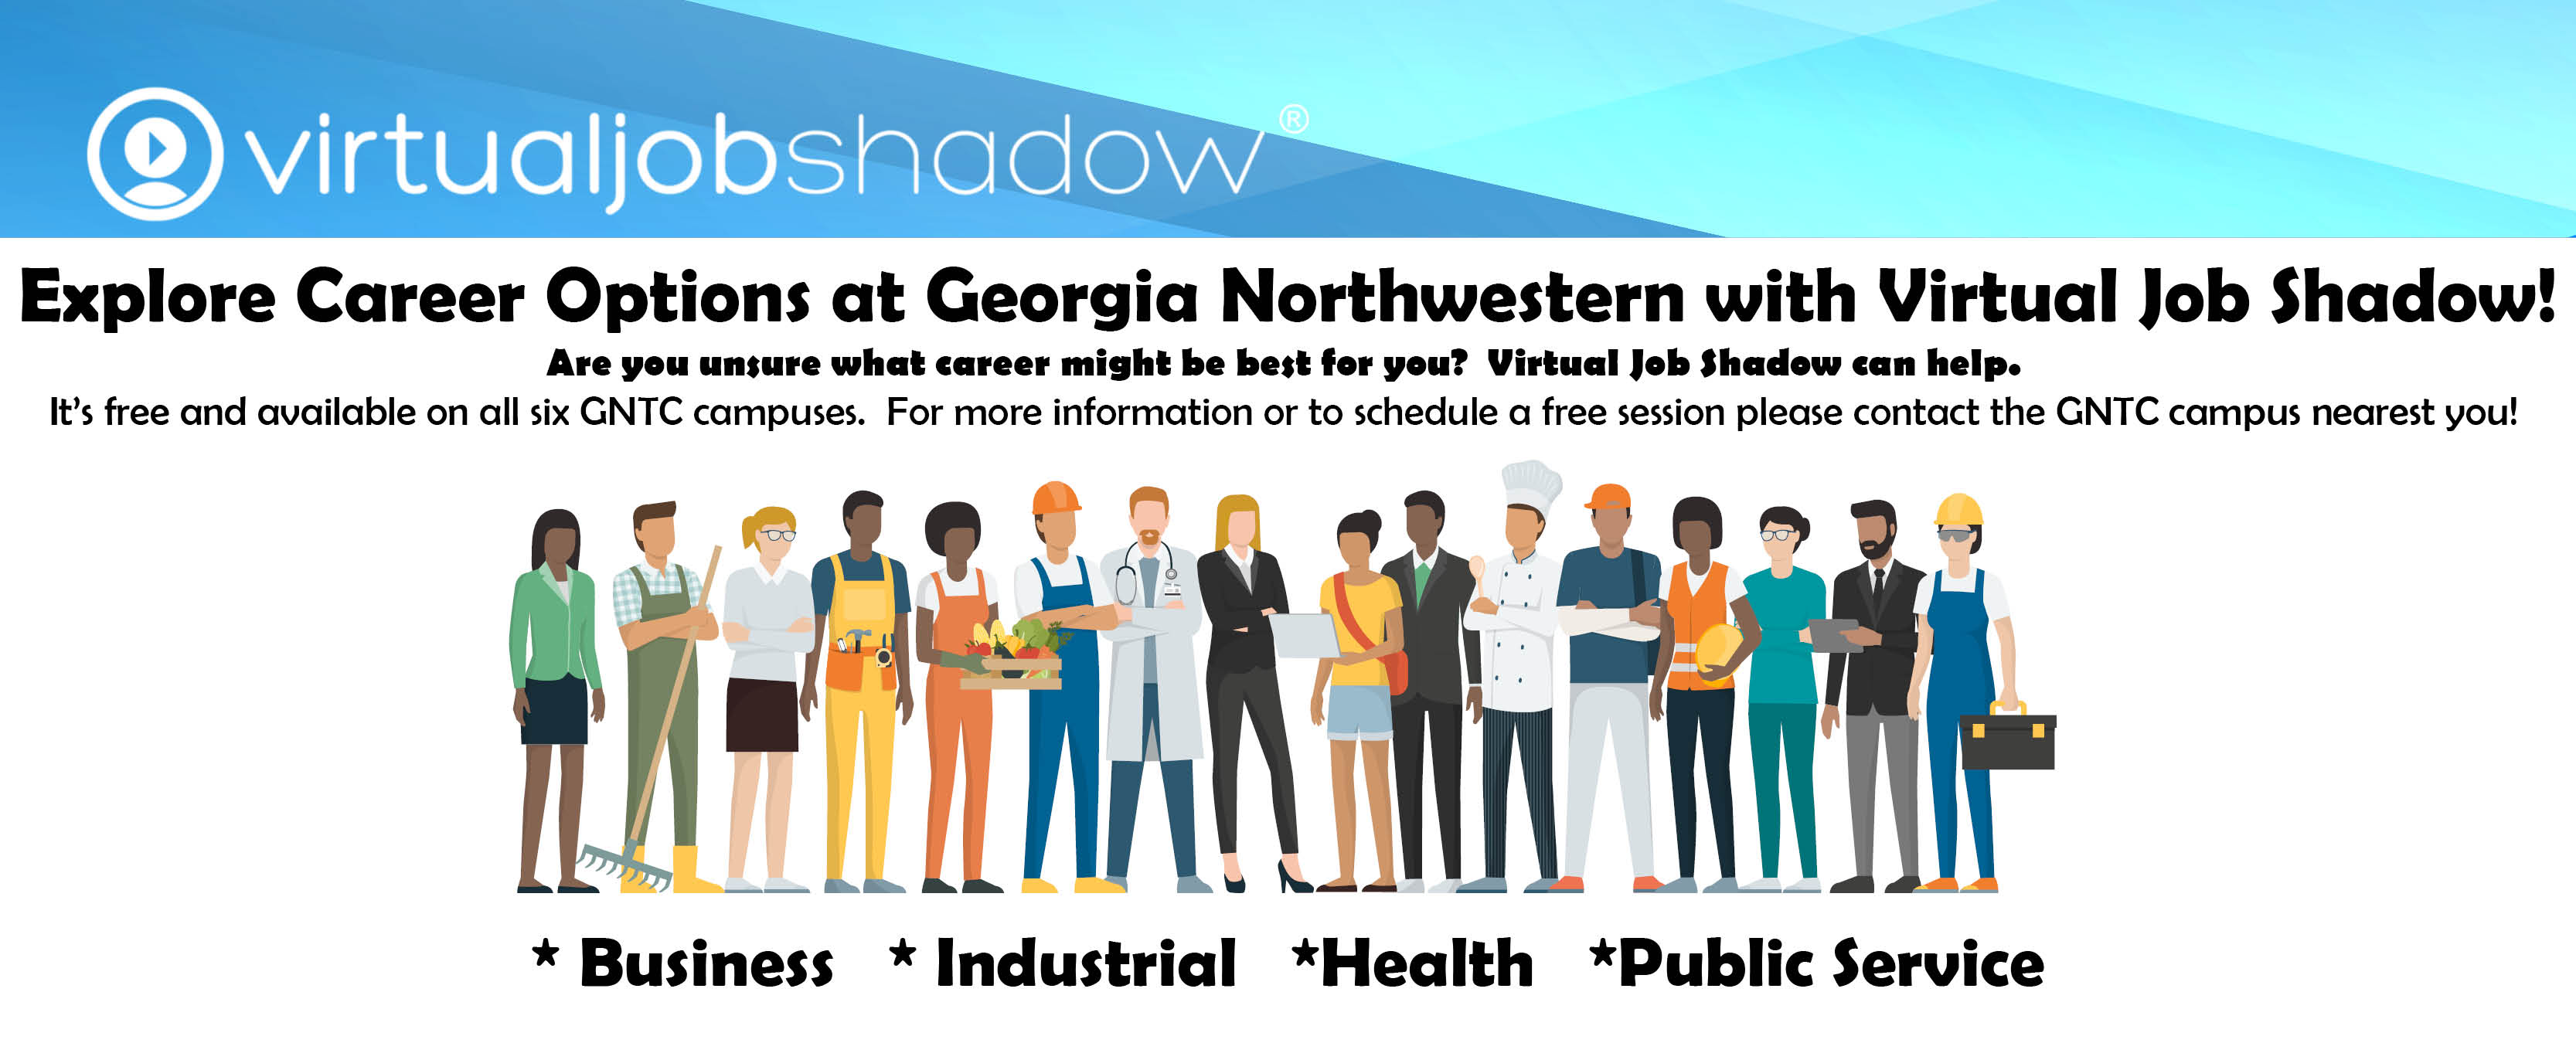 Photo of many people from different occupations standing side by side.  Virtual Job Shadow Logo at the top with a blue background.